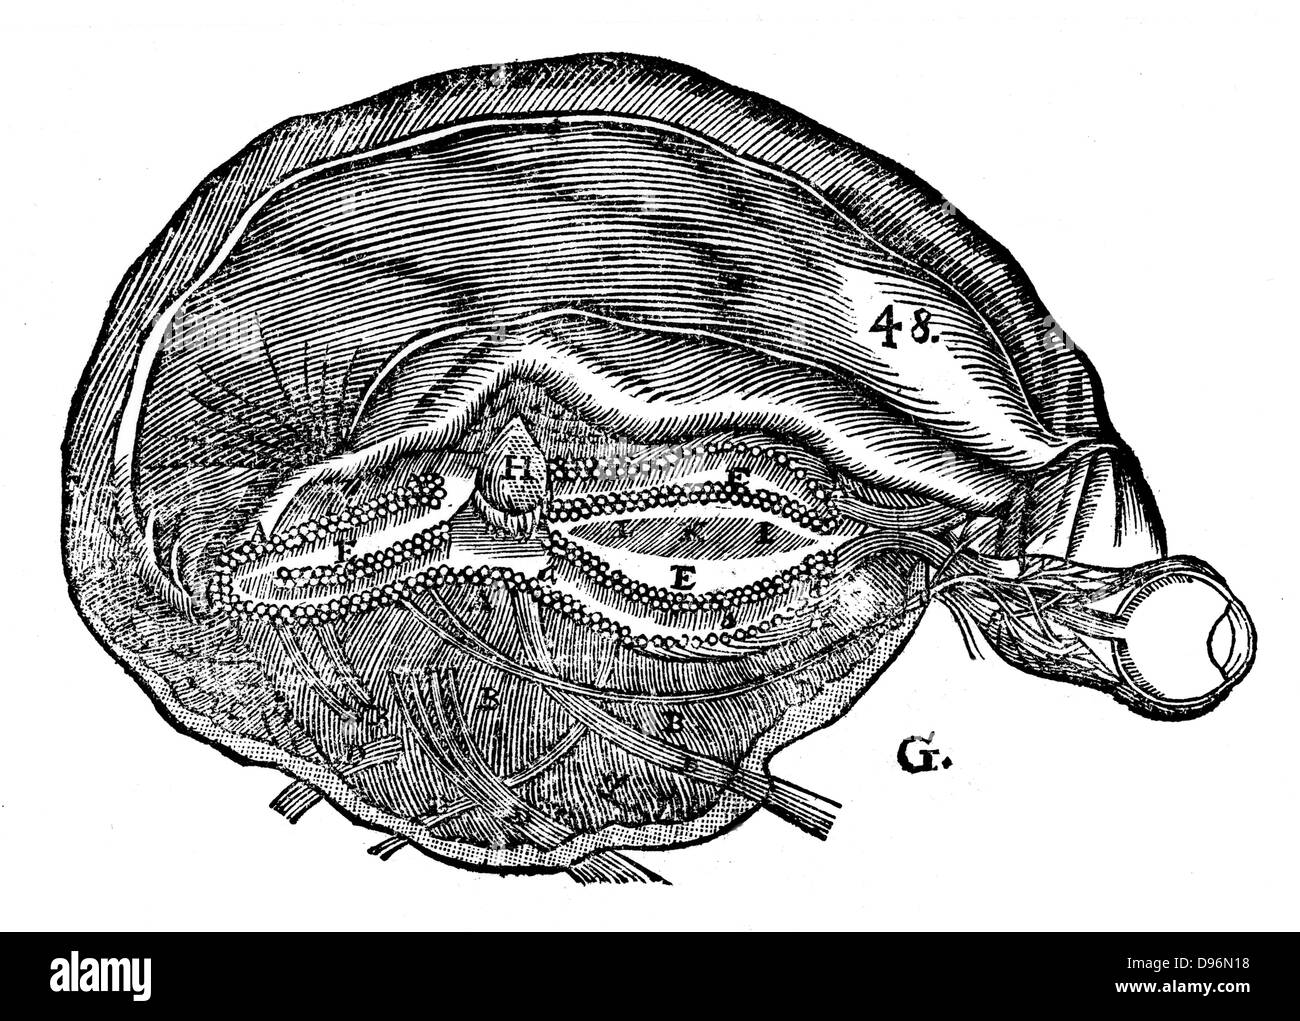 Human eye diagram black and white stock photos images alamy descartes diagram of the human brain and eye from rene descartes opera philiosophica ccuart Images